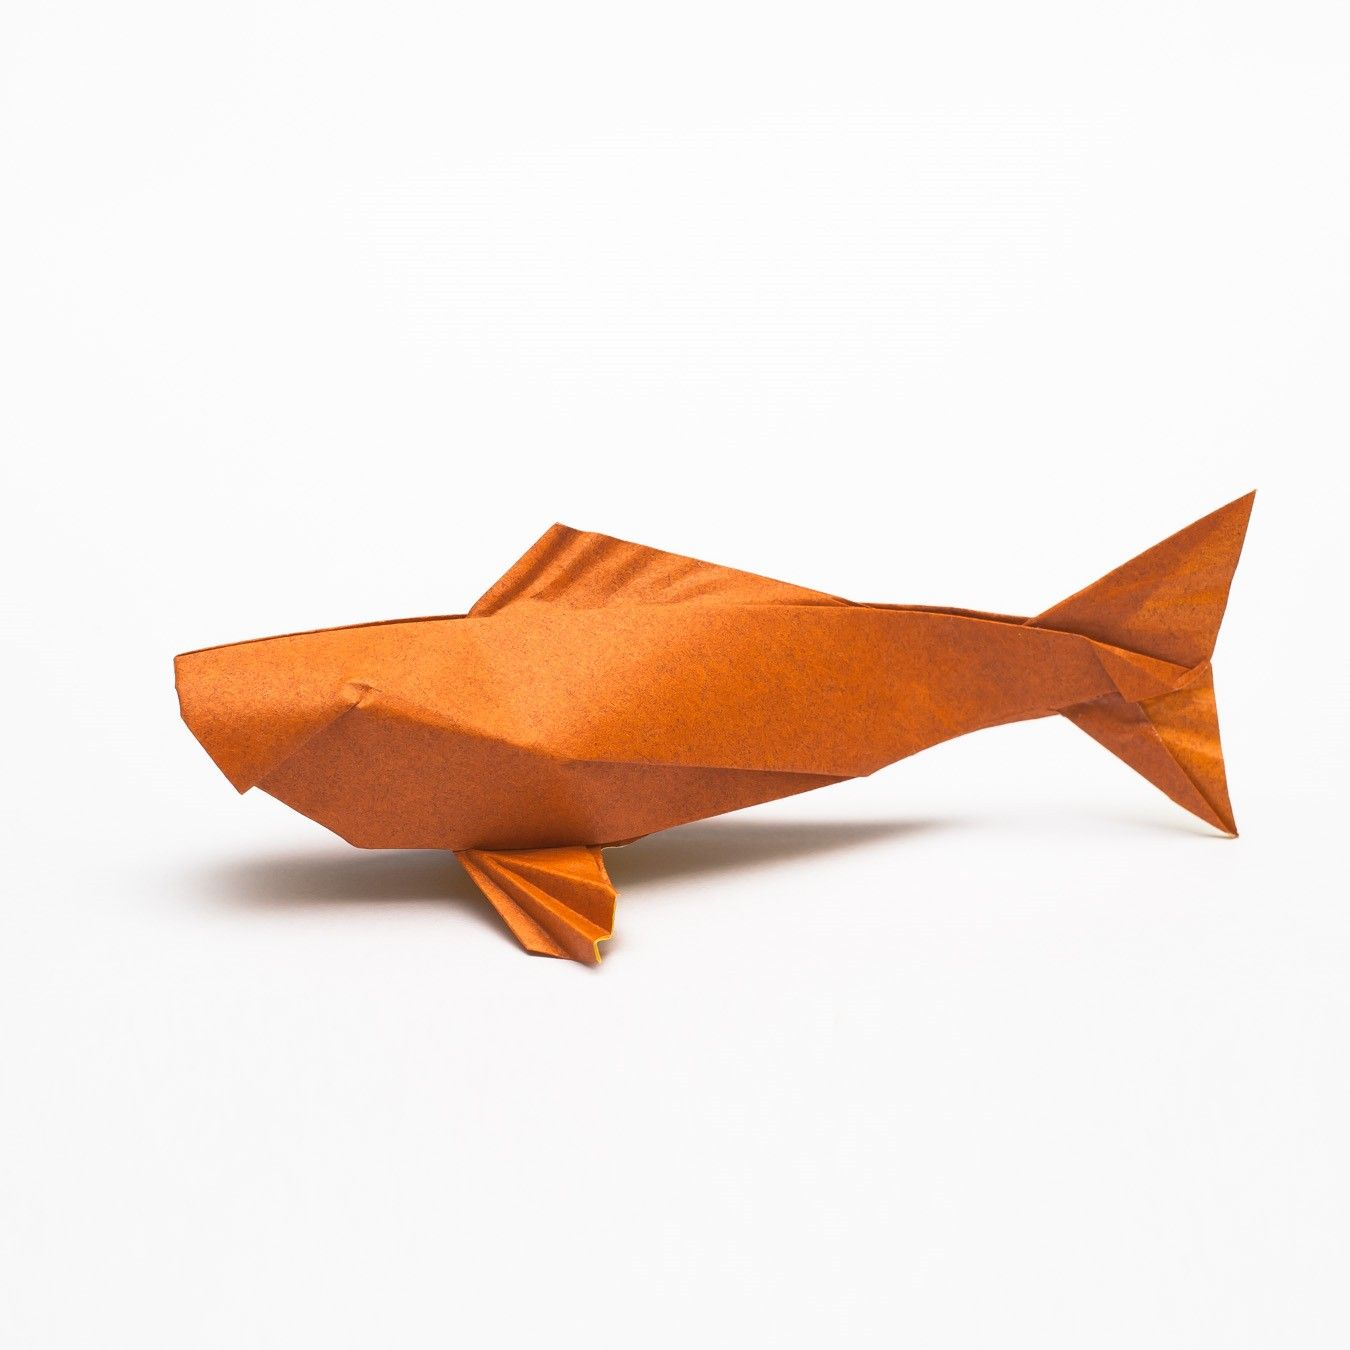 illustration origami carp origami koi fish figure 2